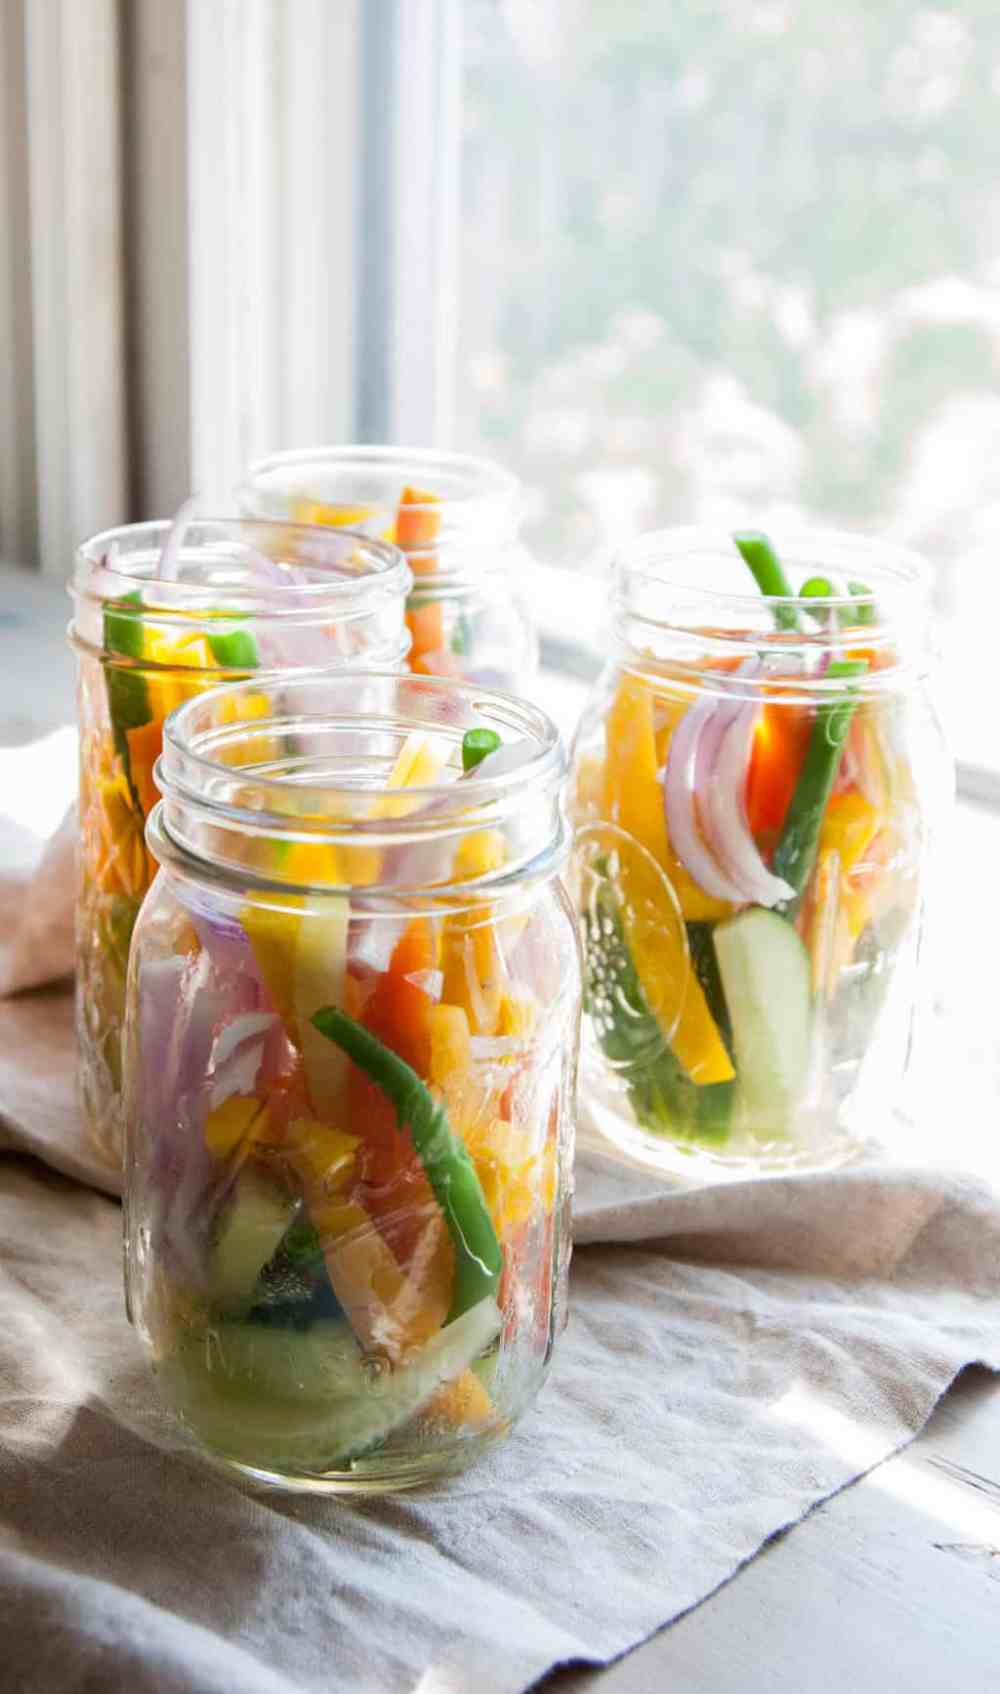 How-to-make-quick-pickled-vegetables-5